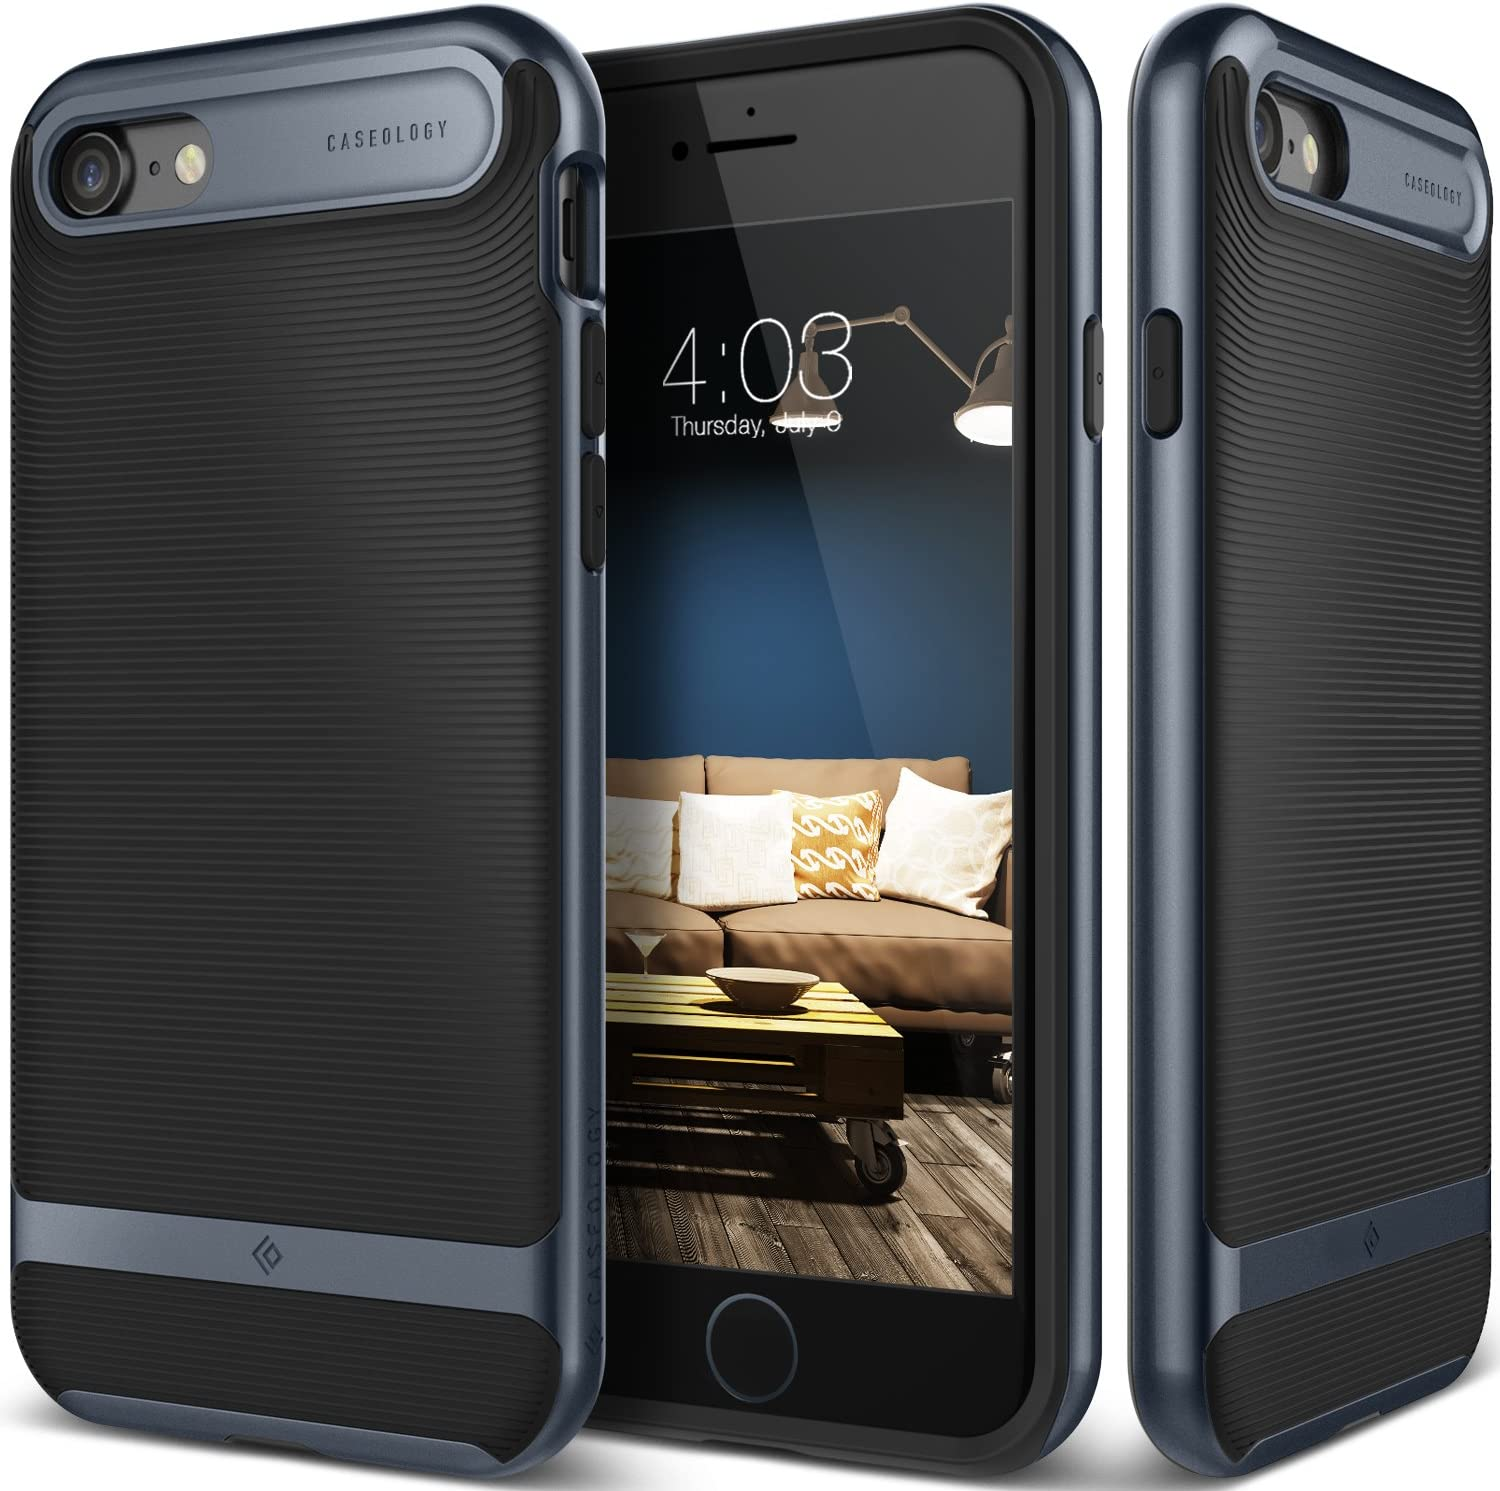 Caseology Wavelength for Apple iPhone 8 Case (2017) / for iPhone 7 Case (2016) - Stylish Grip Design - Black/Deep Blue